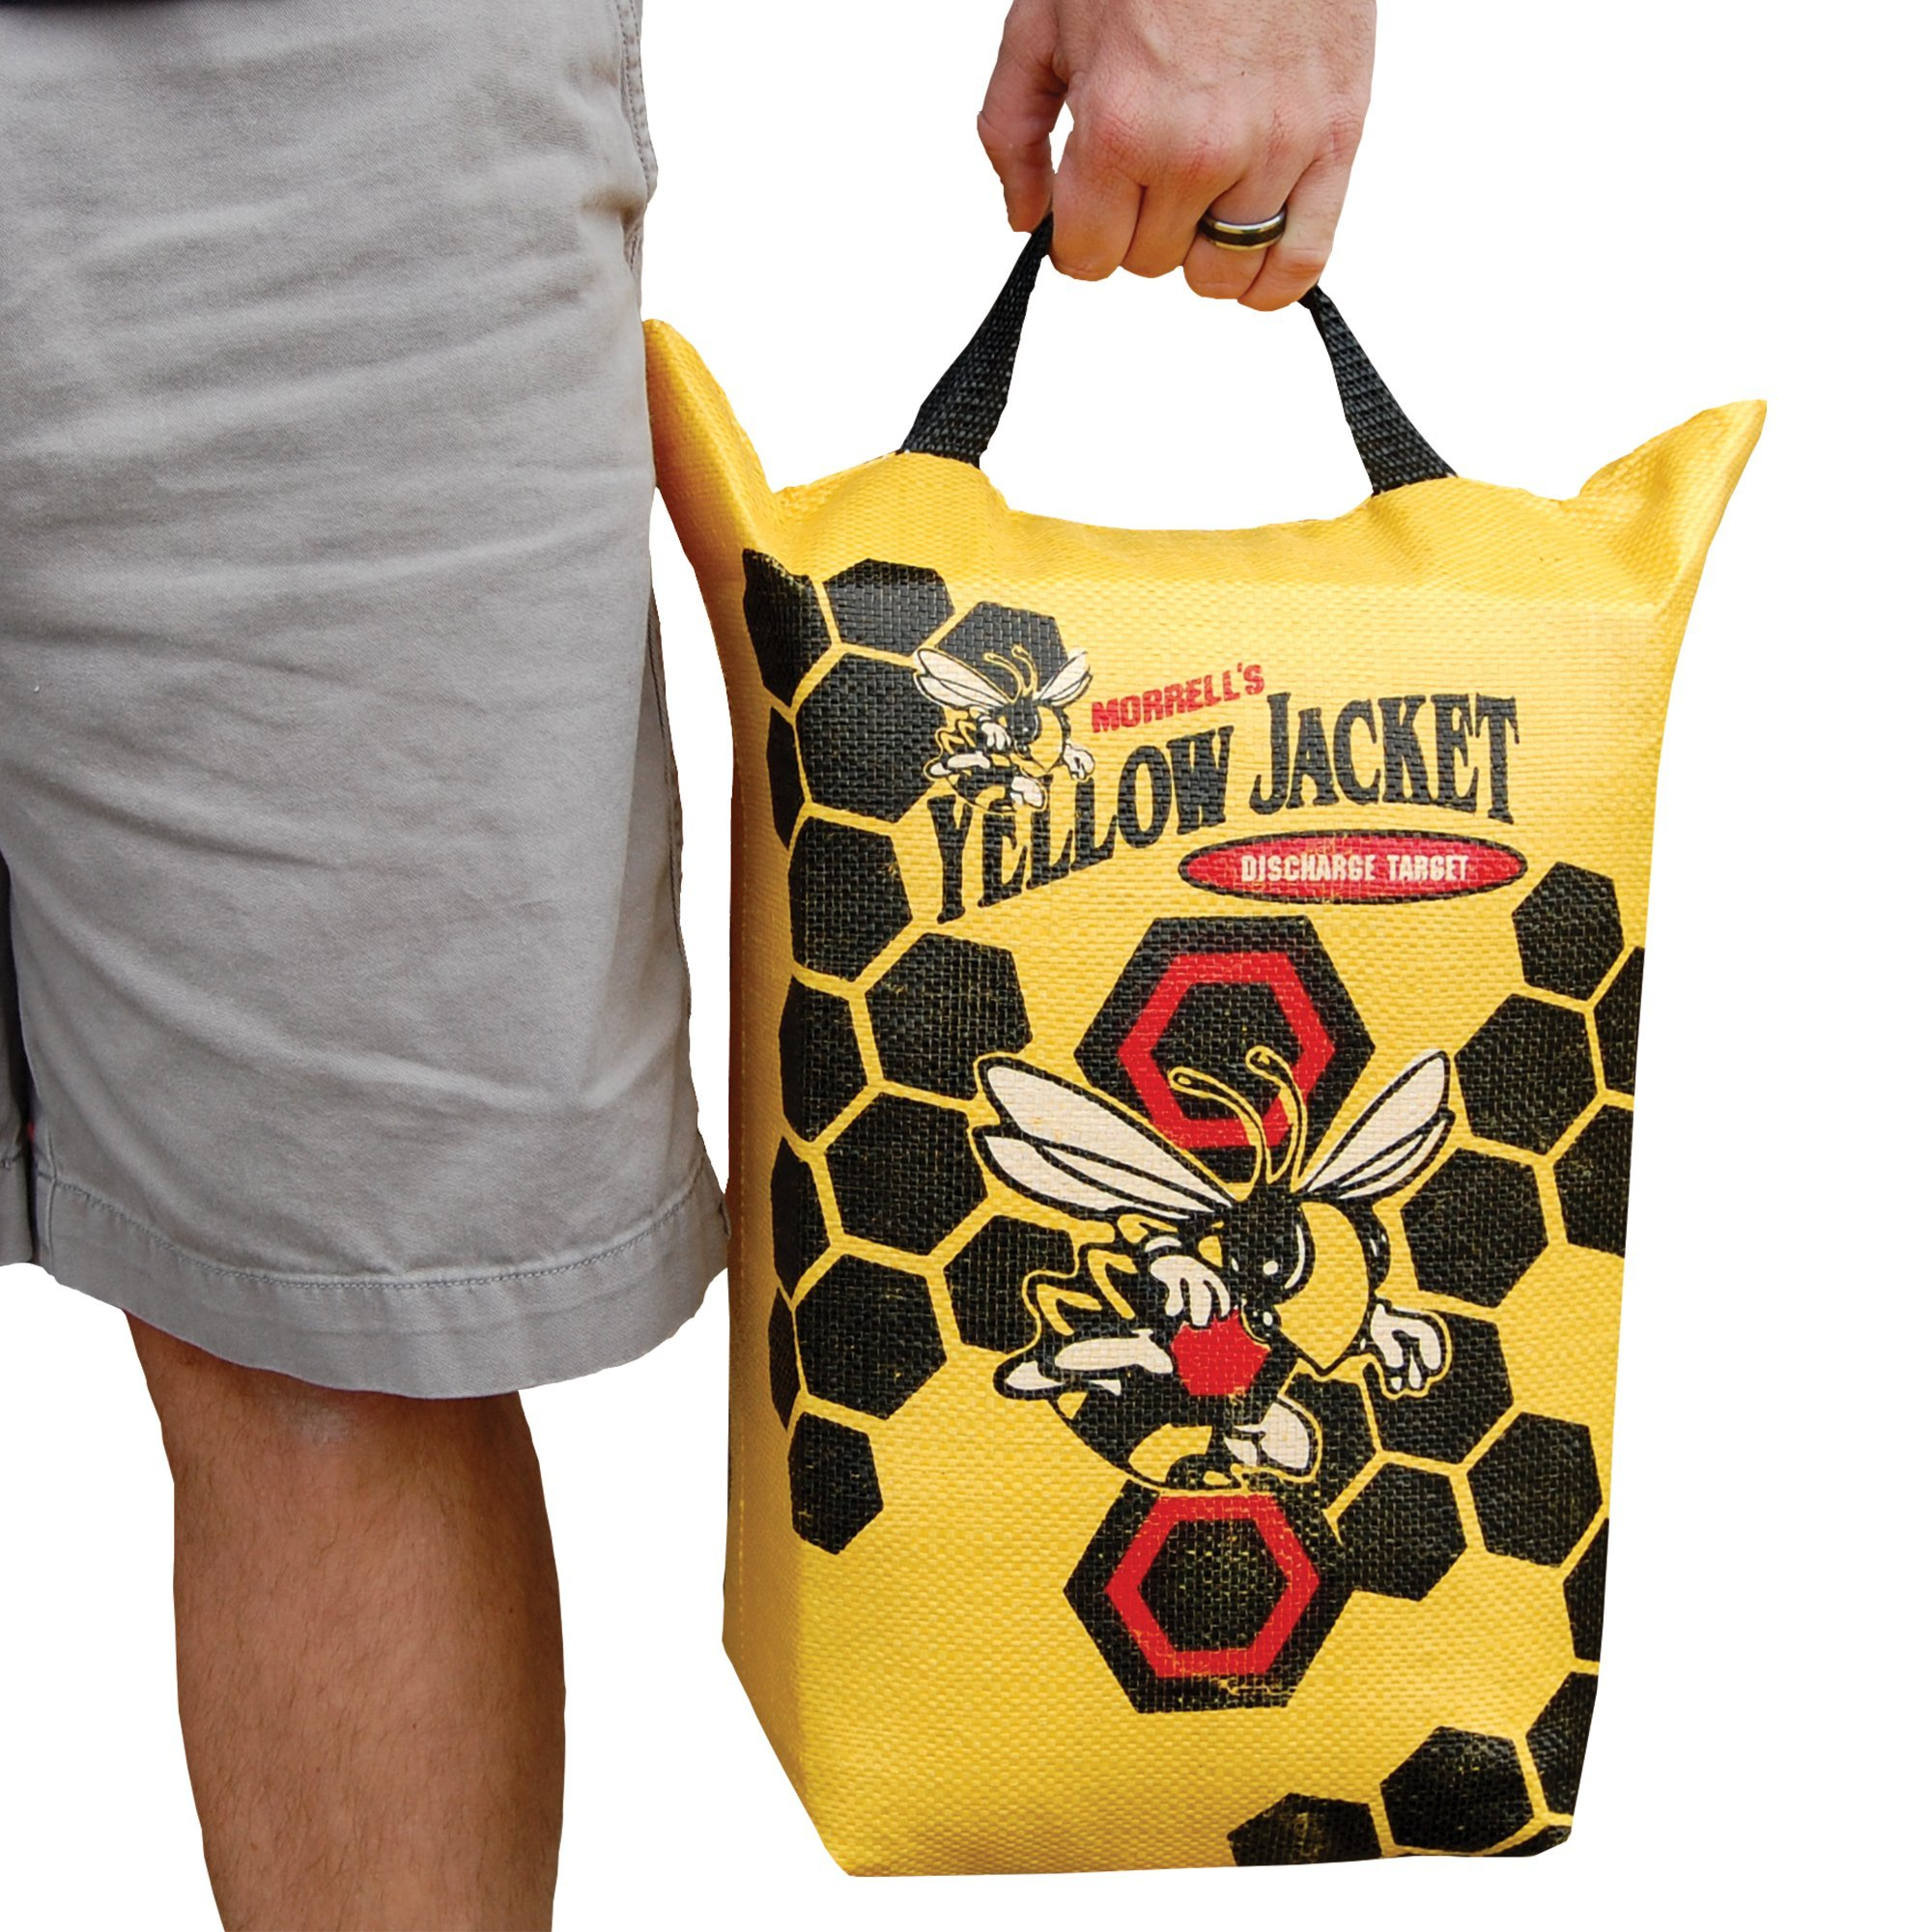 Morrell Yellow Jacket Crossbow Bolt Discharge Bag Archery Target - for Safely Discharging Crossbow Bolts After Hunting by Morrell